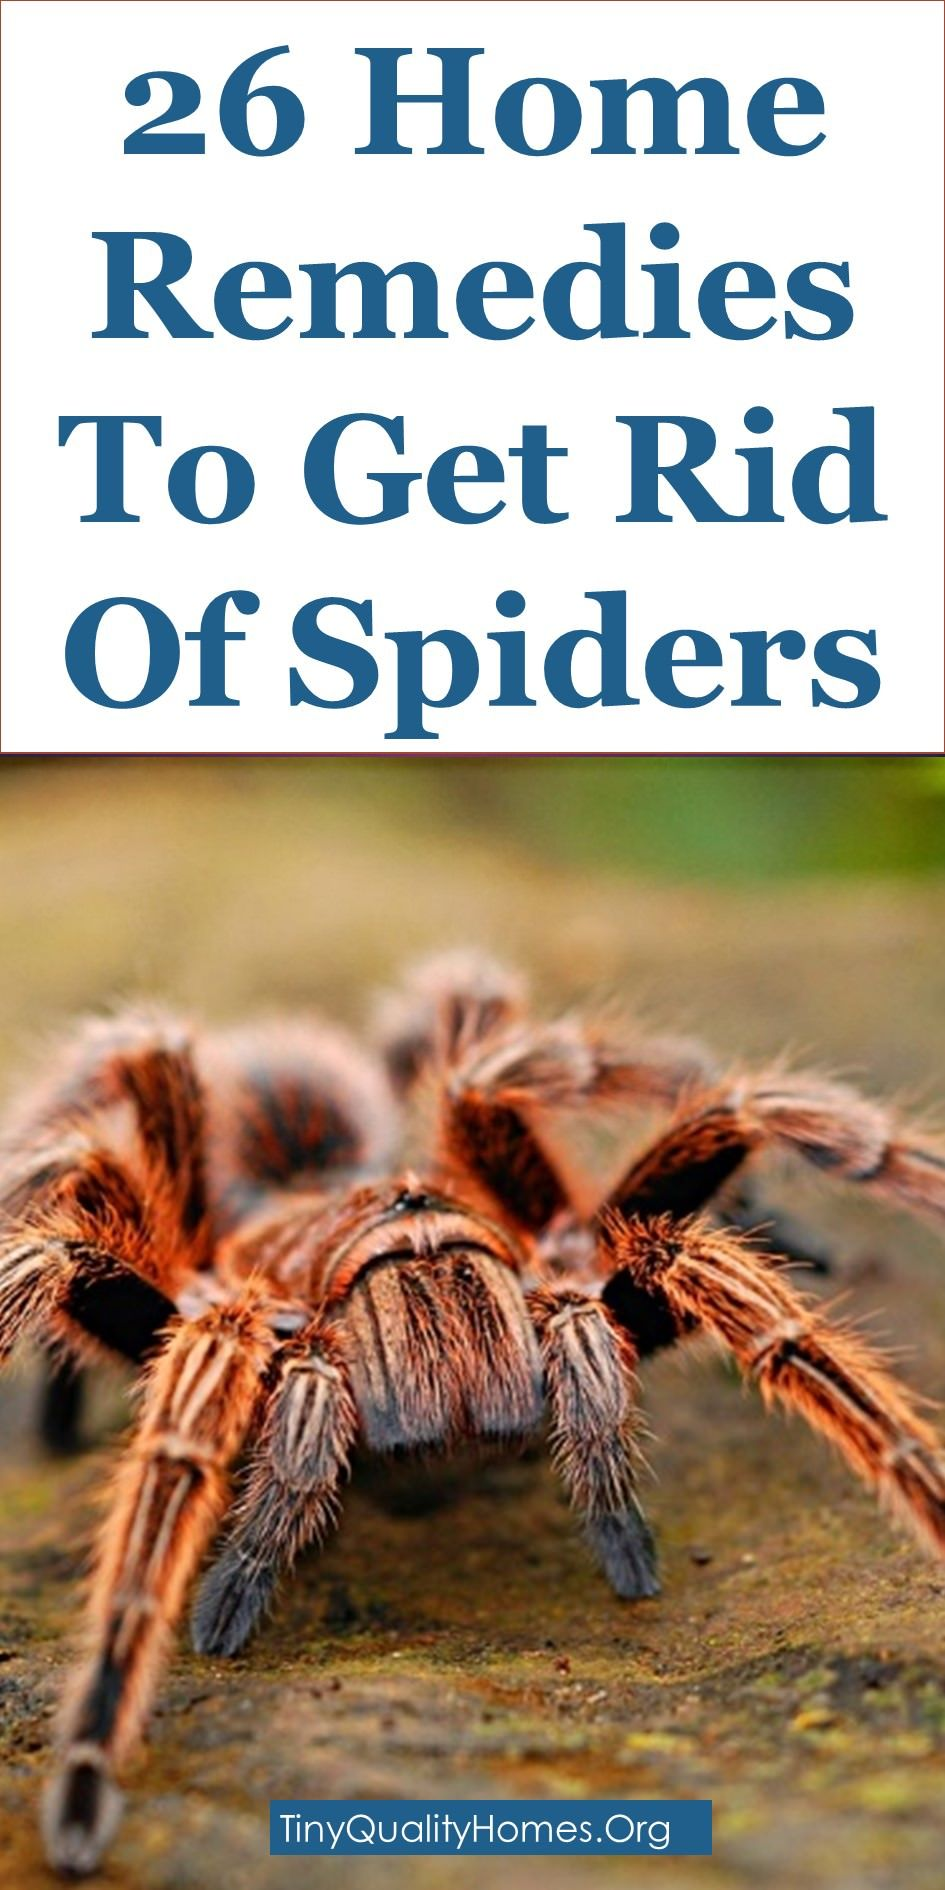 26 Home Remedies Traps And Repellents To Get Rid Of Spiders